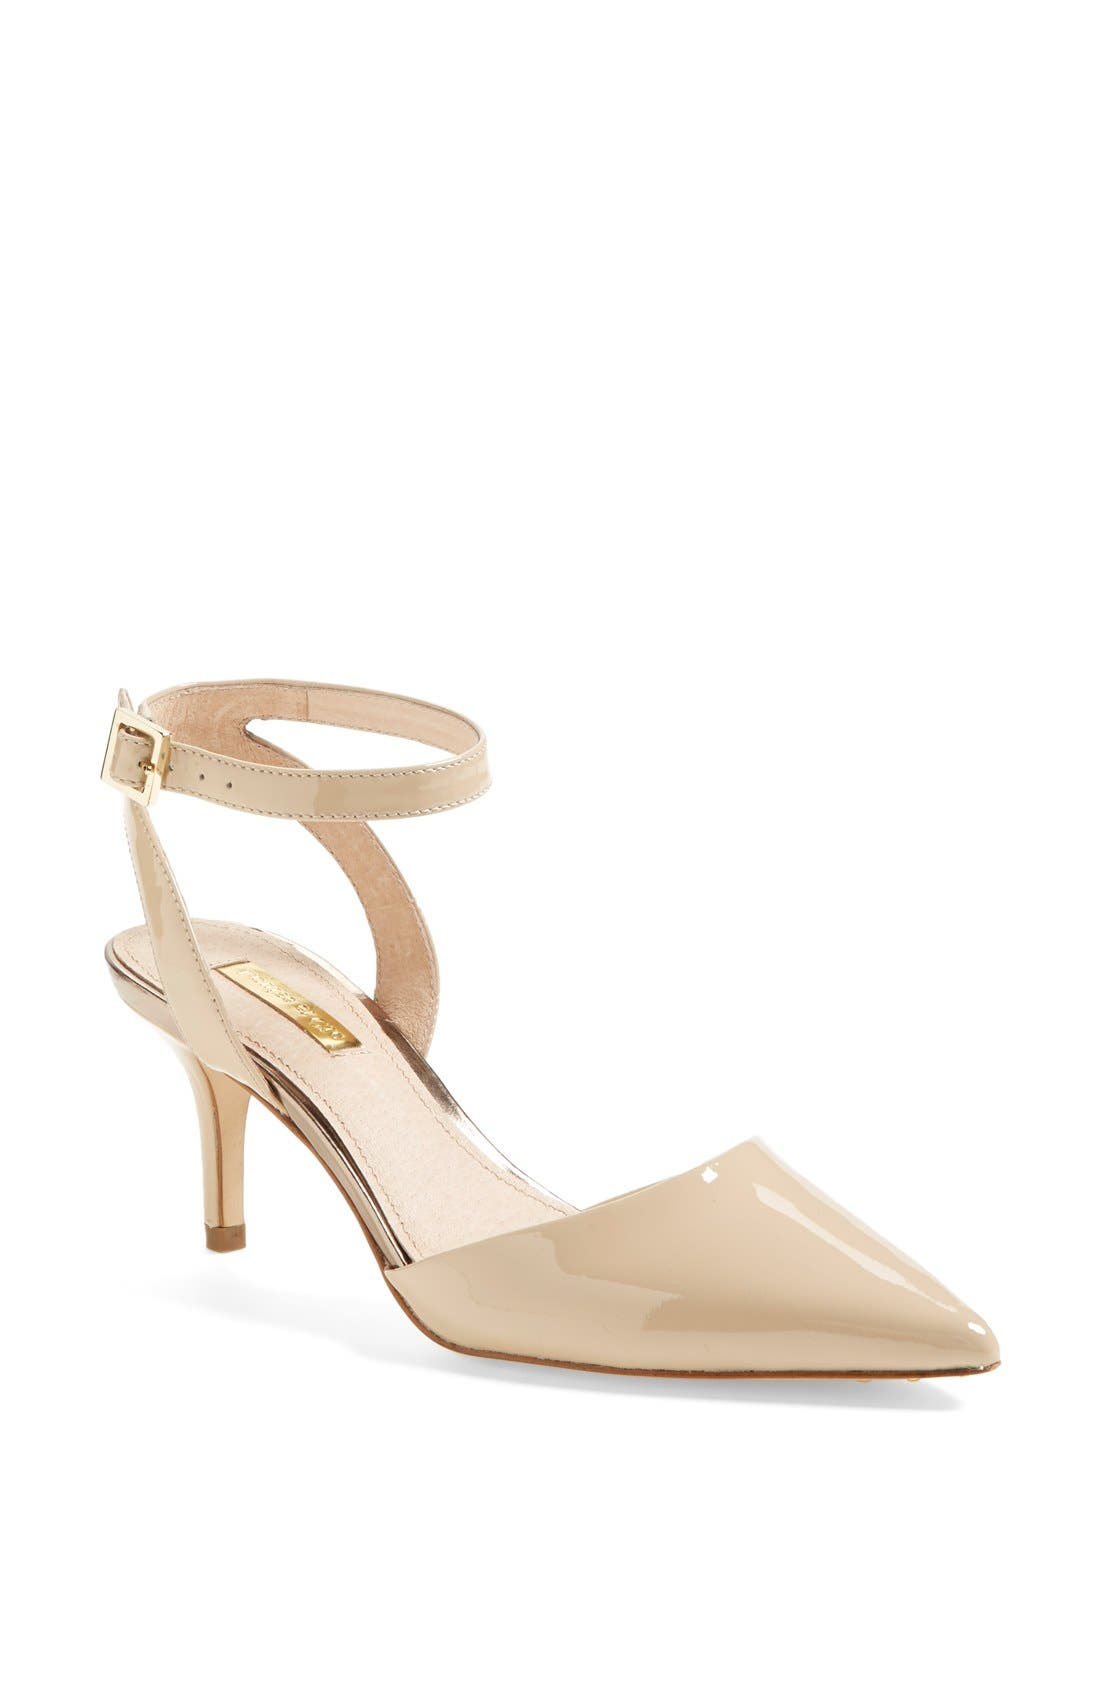 Alternate Image 1 Selected - Louise et Cie 'Esperance' Pump (Women)